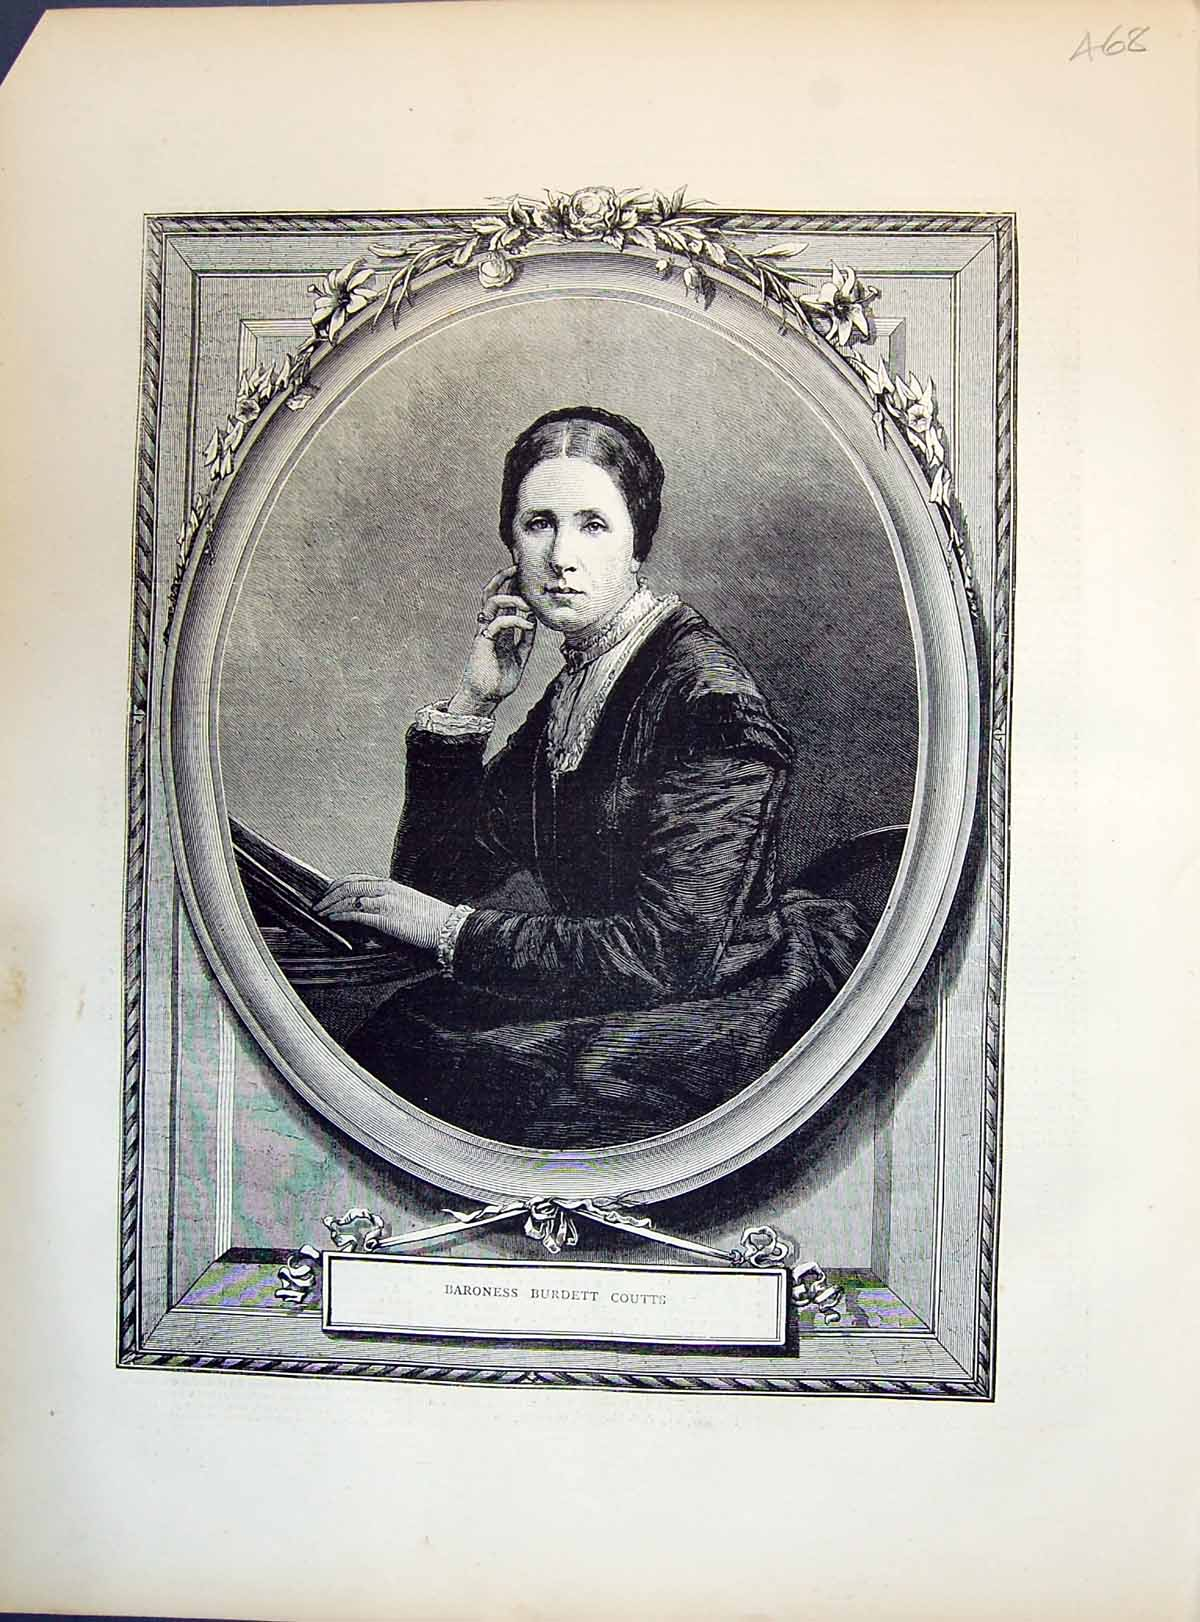 Old-Antique-Print-1871-Portrait-Beautiful-Woman-Baroness-Burdett-Coutts-19th